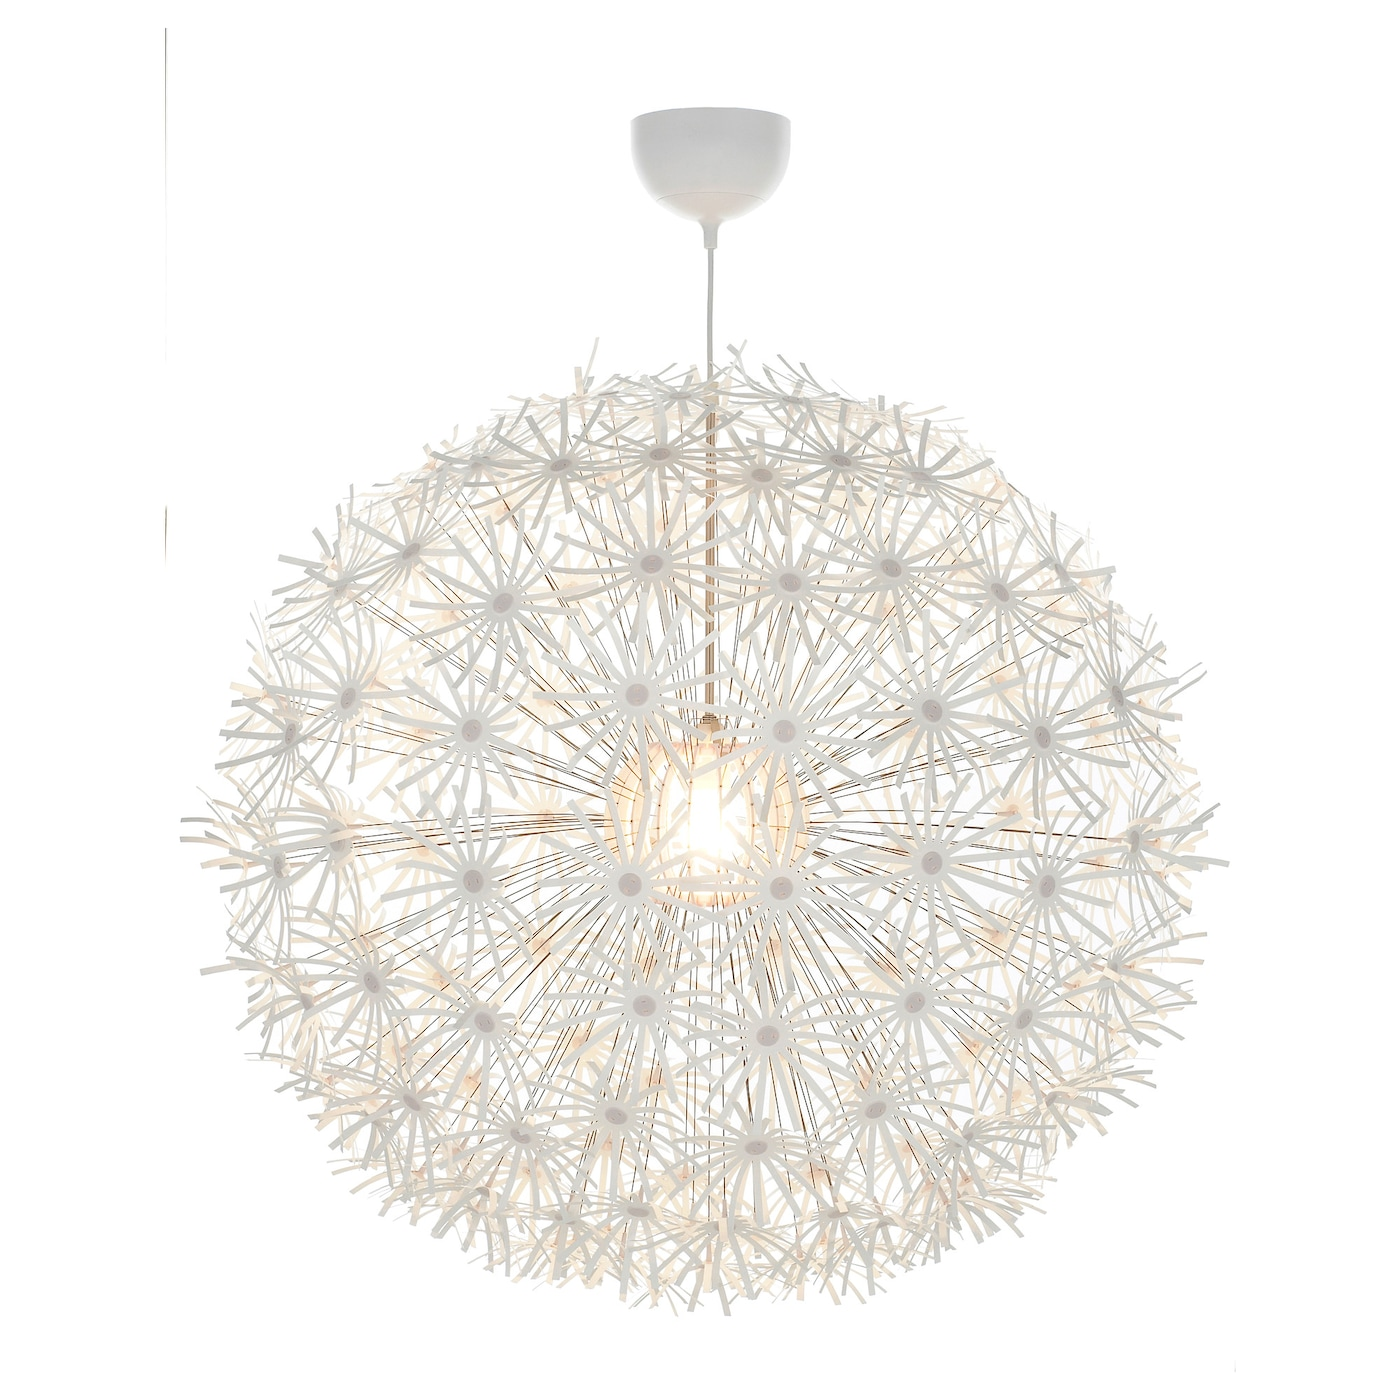 Pendant lighting pendant lamps chandeliers ikea ikea ikea ps maskros pendant lamp gives decorative patterns on the ceiling and on the wall aloadofball Choice Image